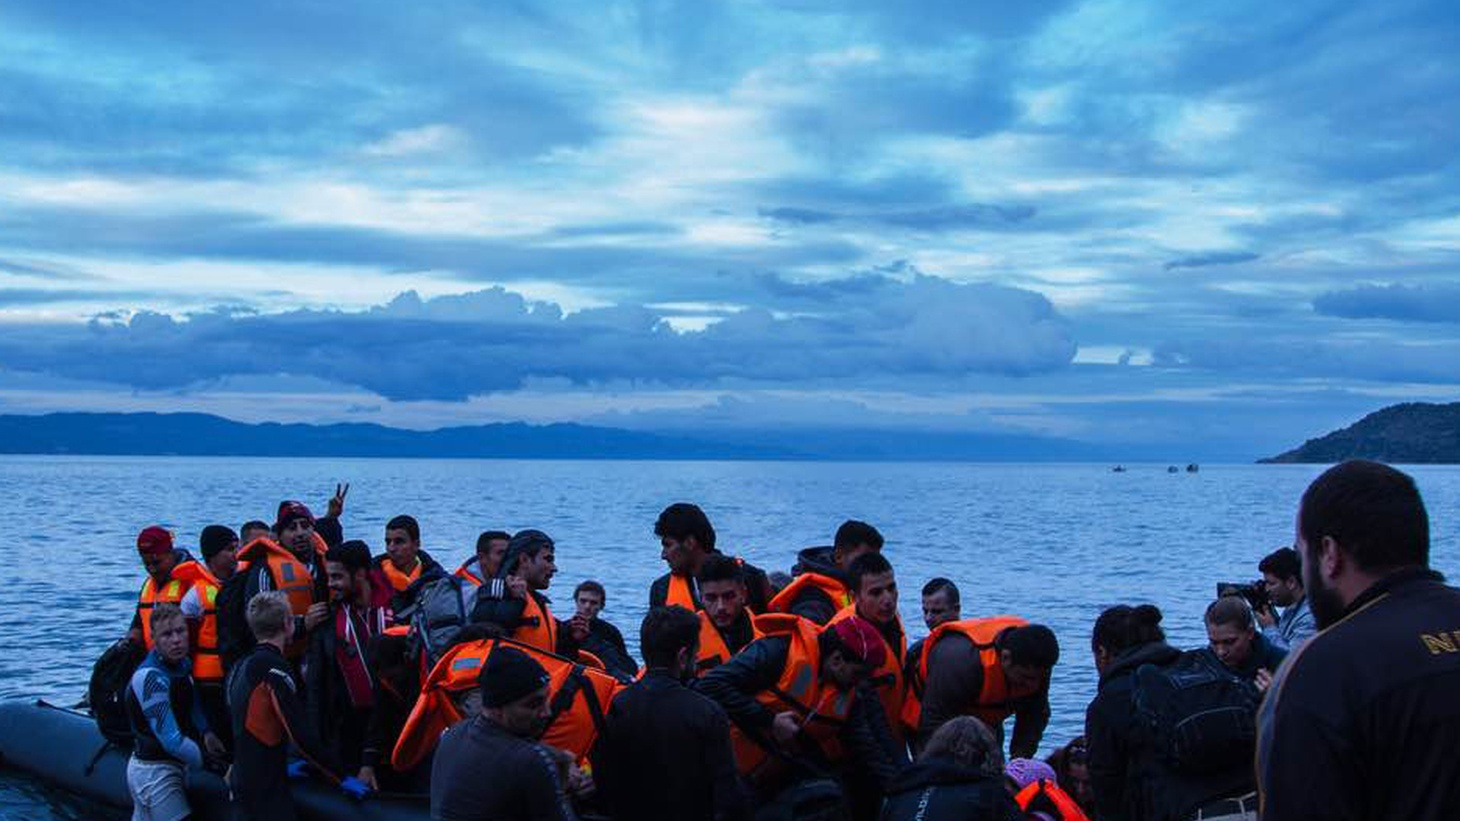 """In November of 2015, independent producer Scott Carrier followed the refugee trail backwards to Lesbos, and asked, """"Why did you leave home? Where are you going? What has happened along the way?"""""""